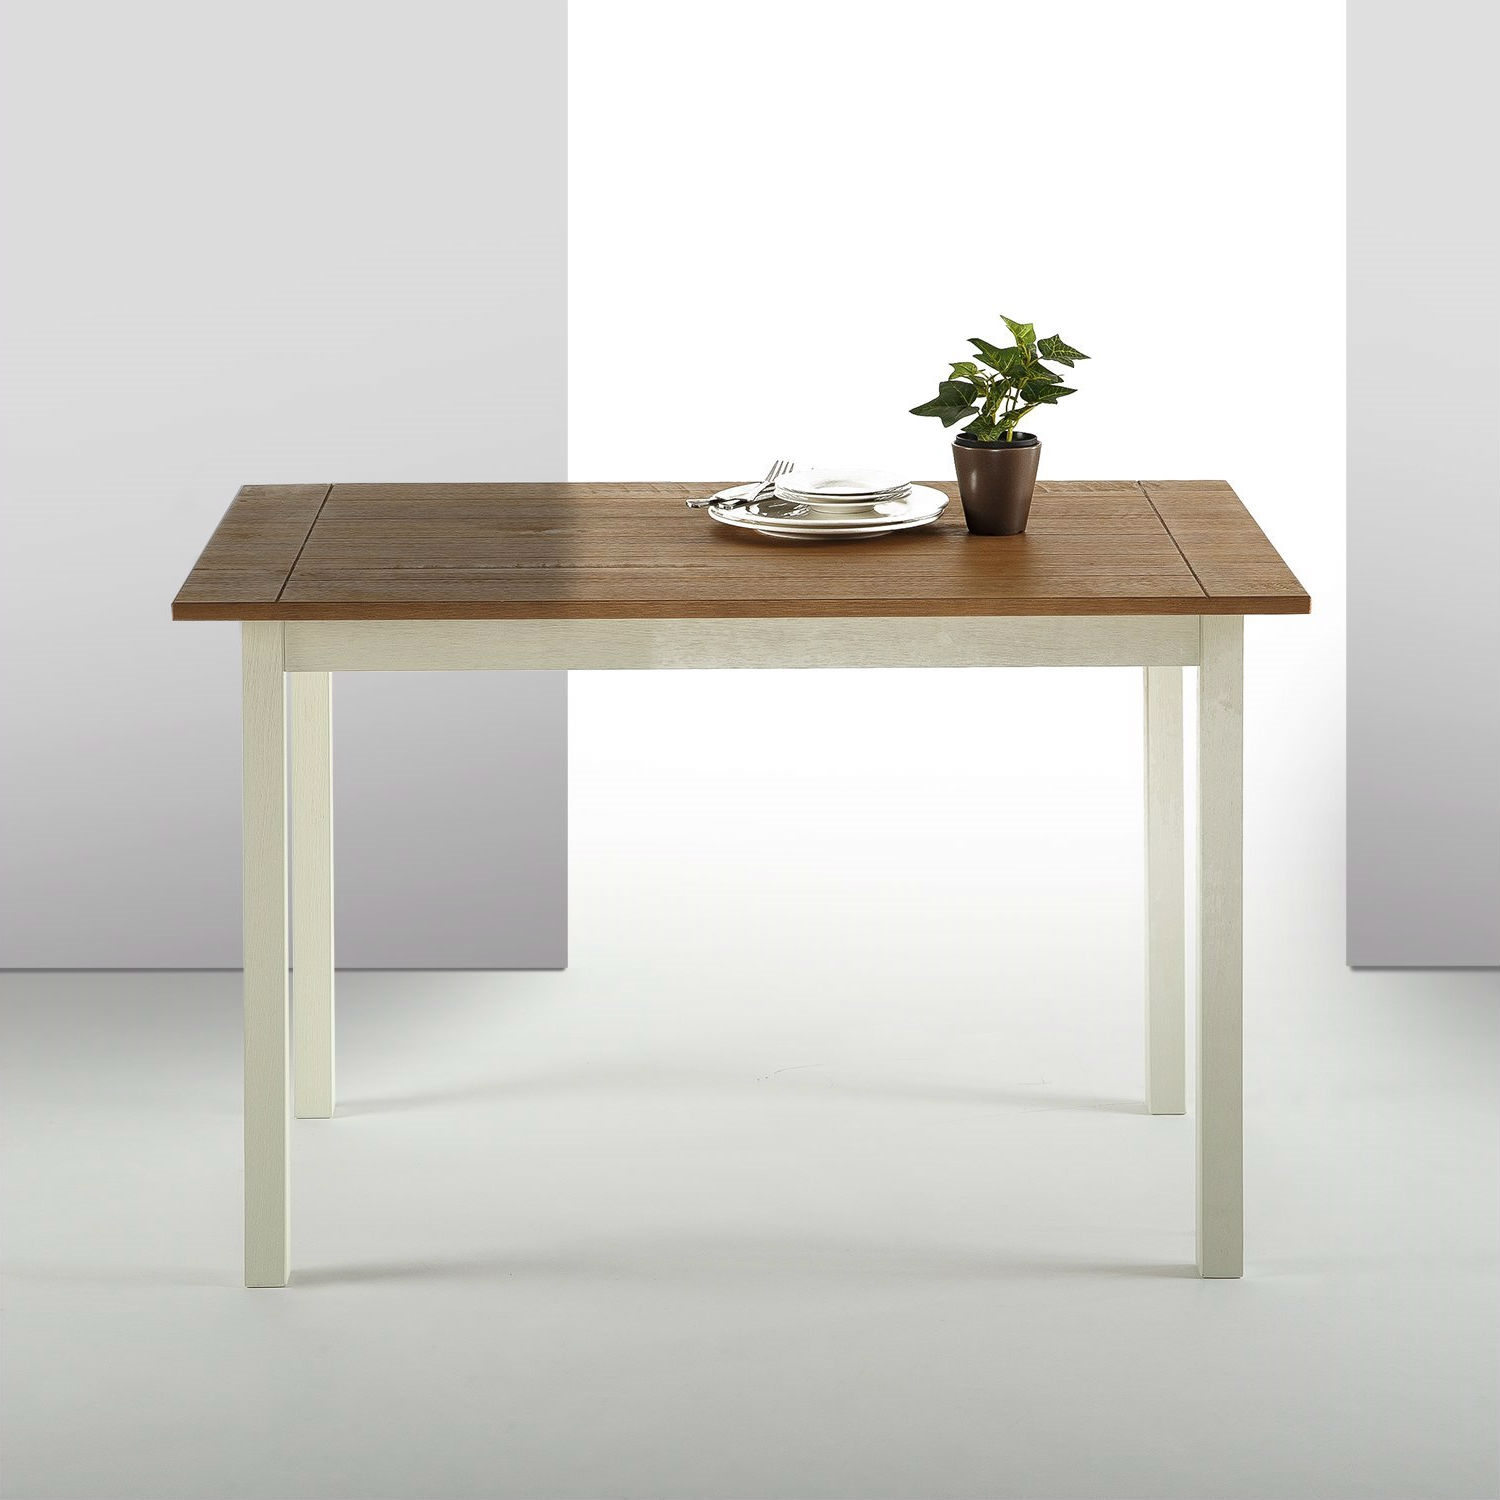 Classic Pine Wood 45 X 28 Inch Dining Table With White Legs